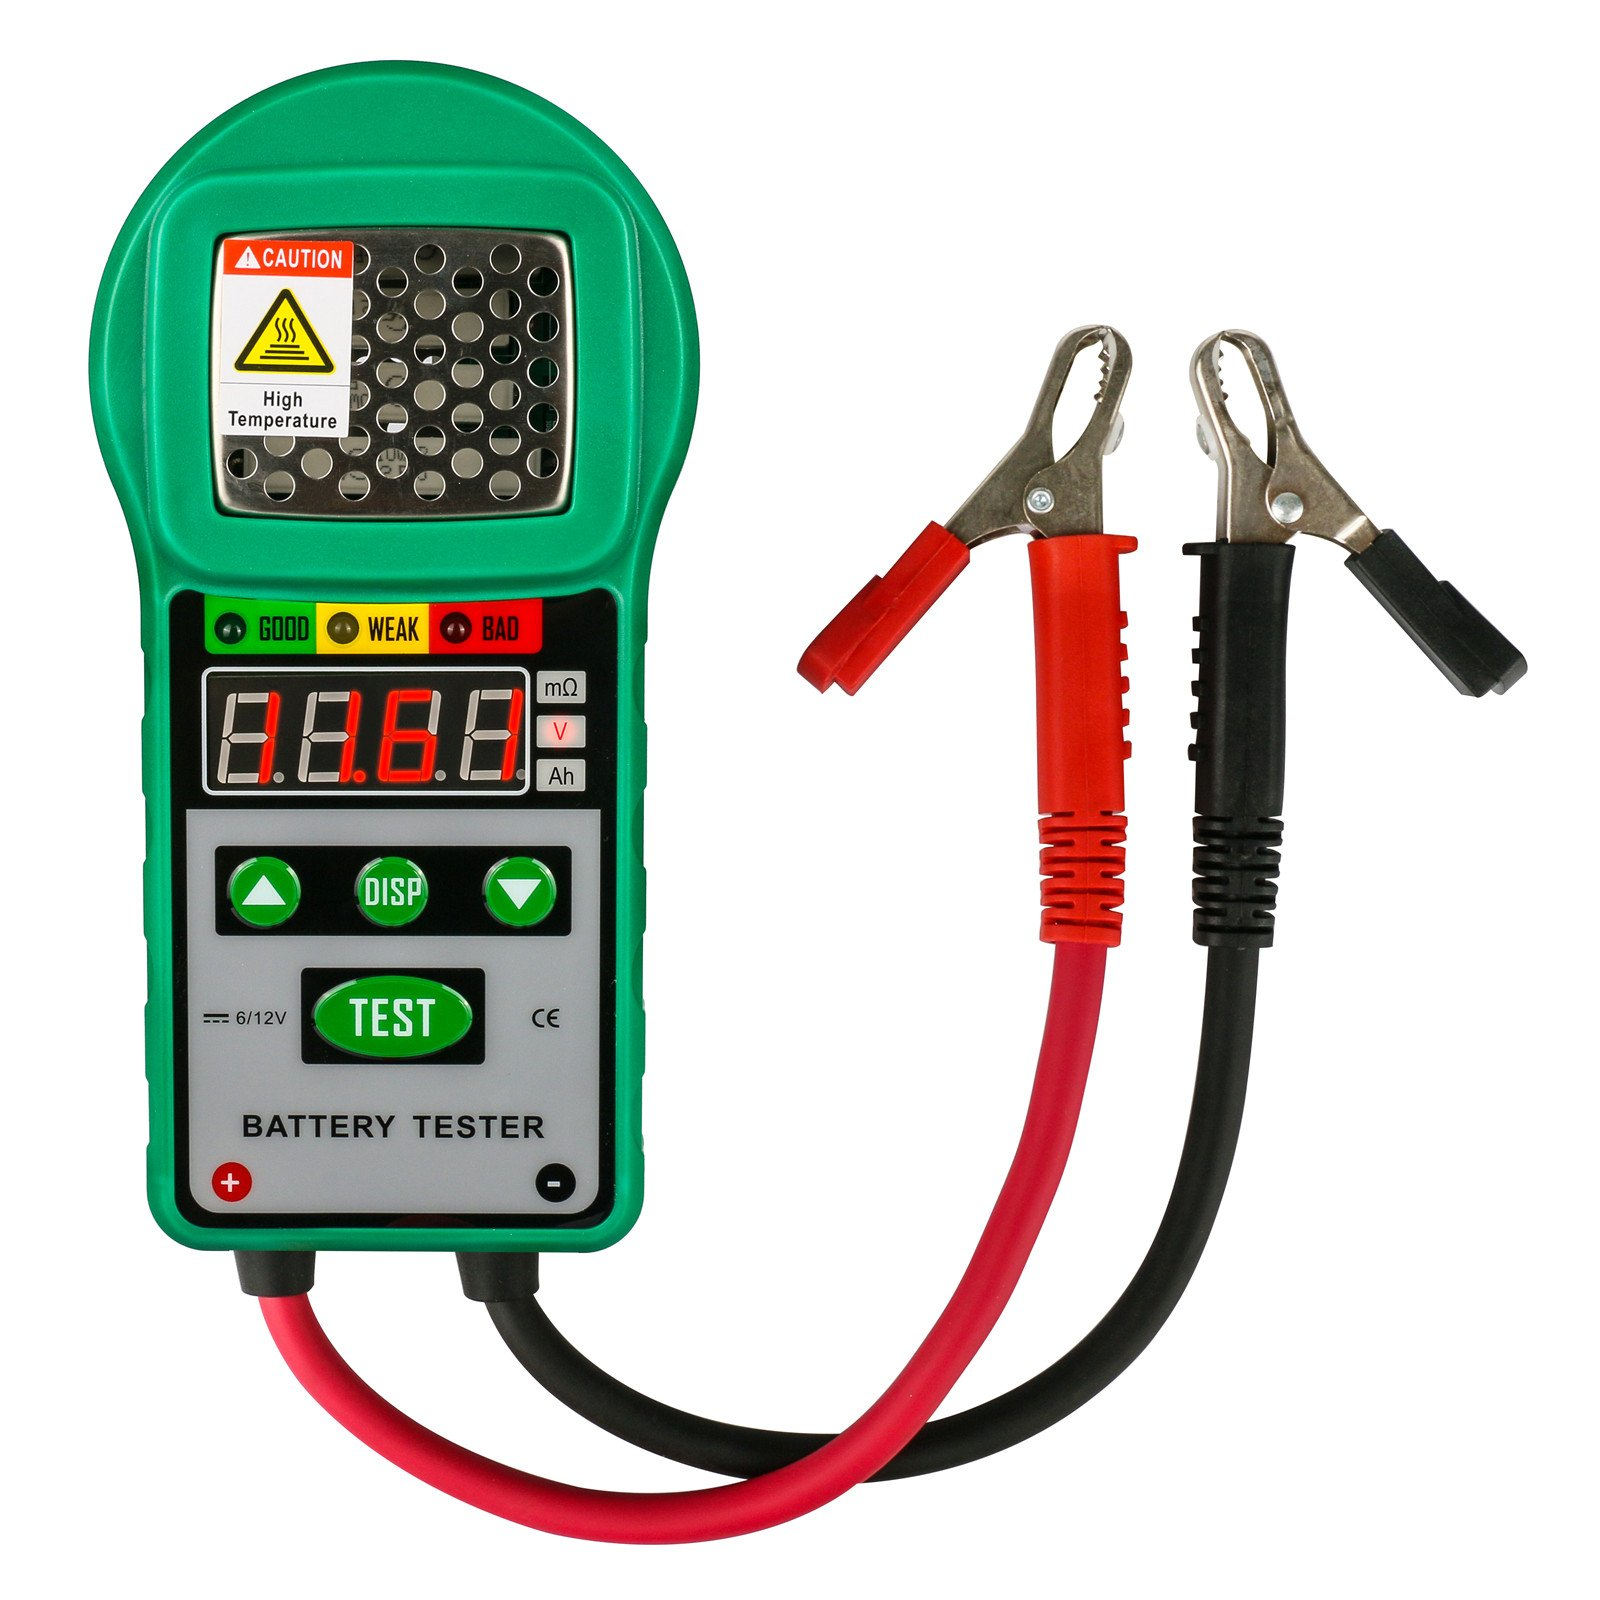 Automotive Battery Tester 6V / 12V Digital Battery Analyzer Lead-acid Accumulators Automotive Battery Load Tester for UPS Battery, Solar Energy Storage Battery, Marine Battery(20A 5Ah ~ 80Ah)